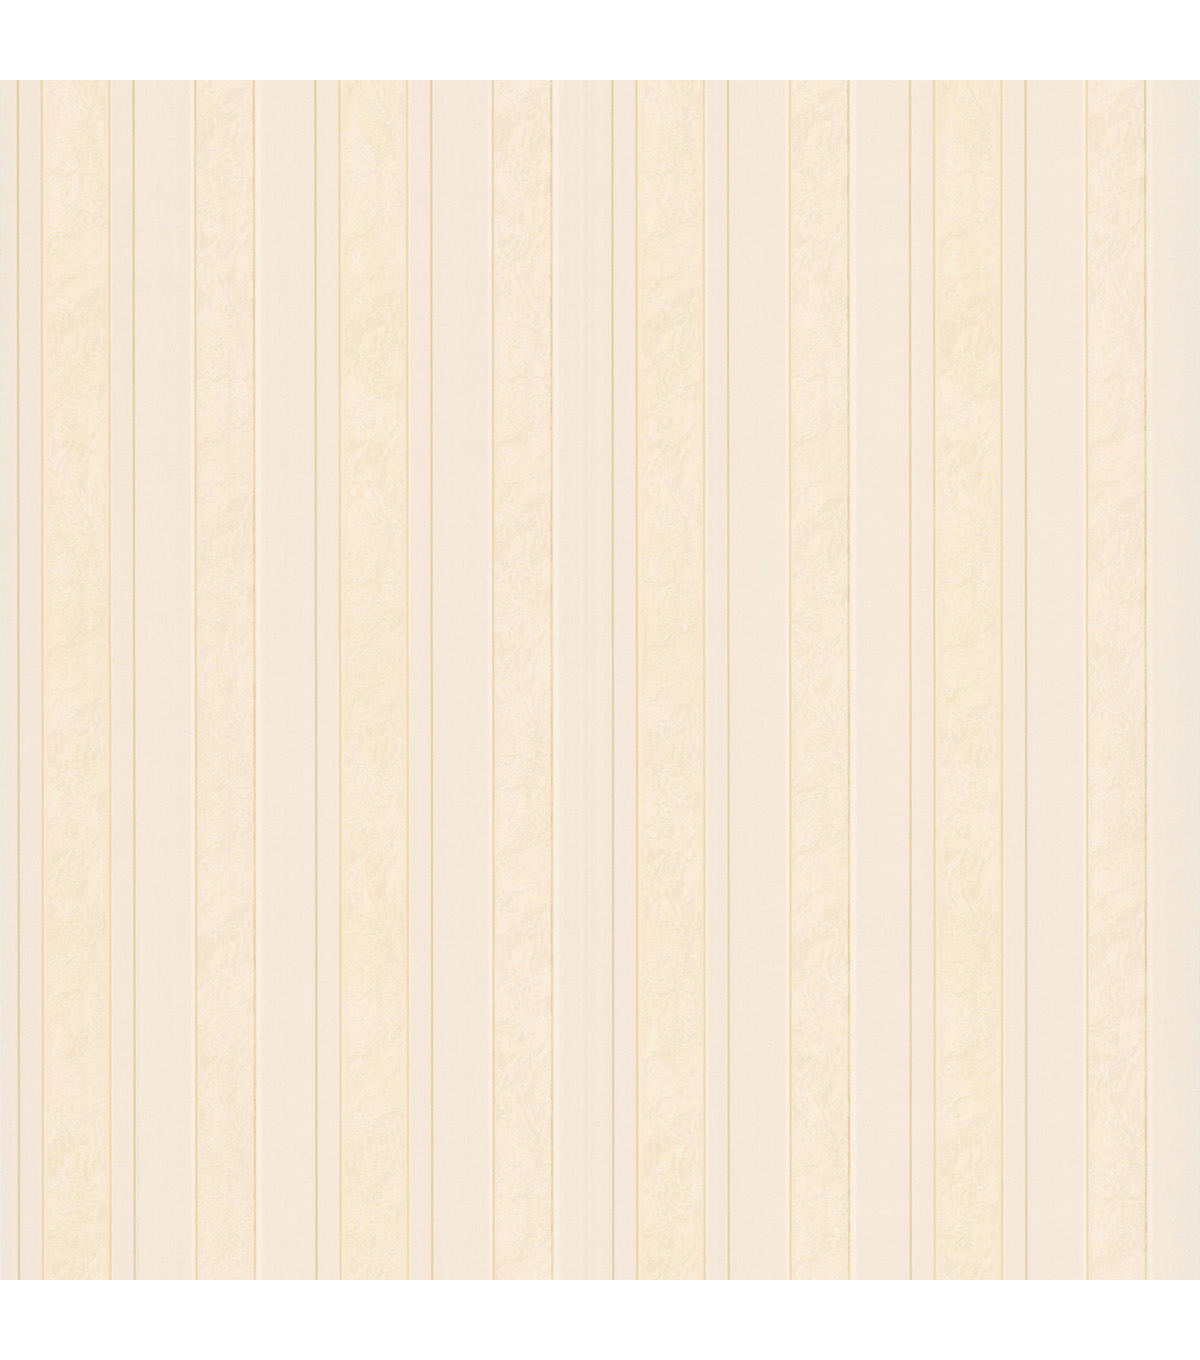 Kingsbury Cream Satin Stripe Wallpaper Sample